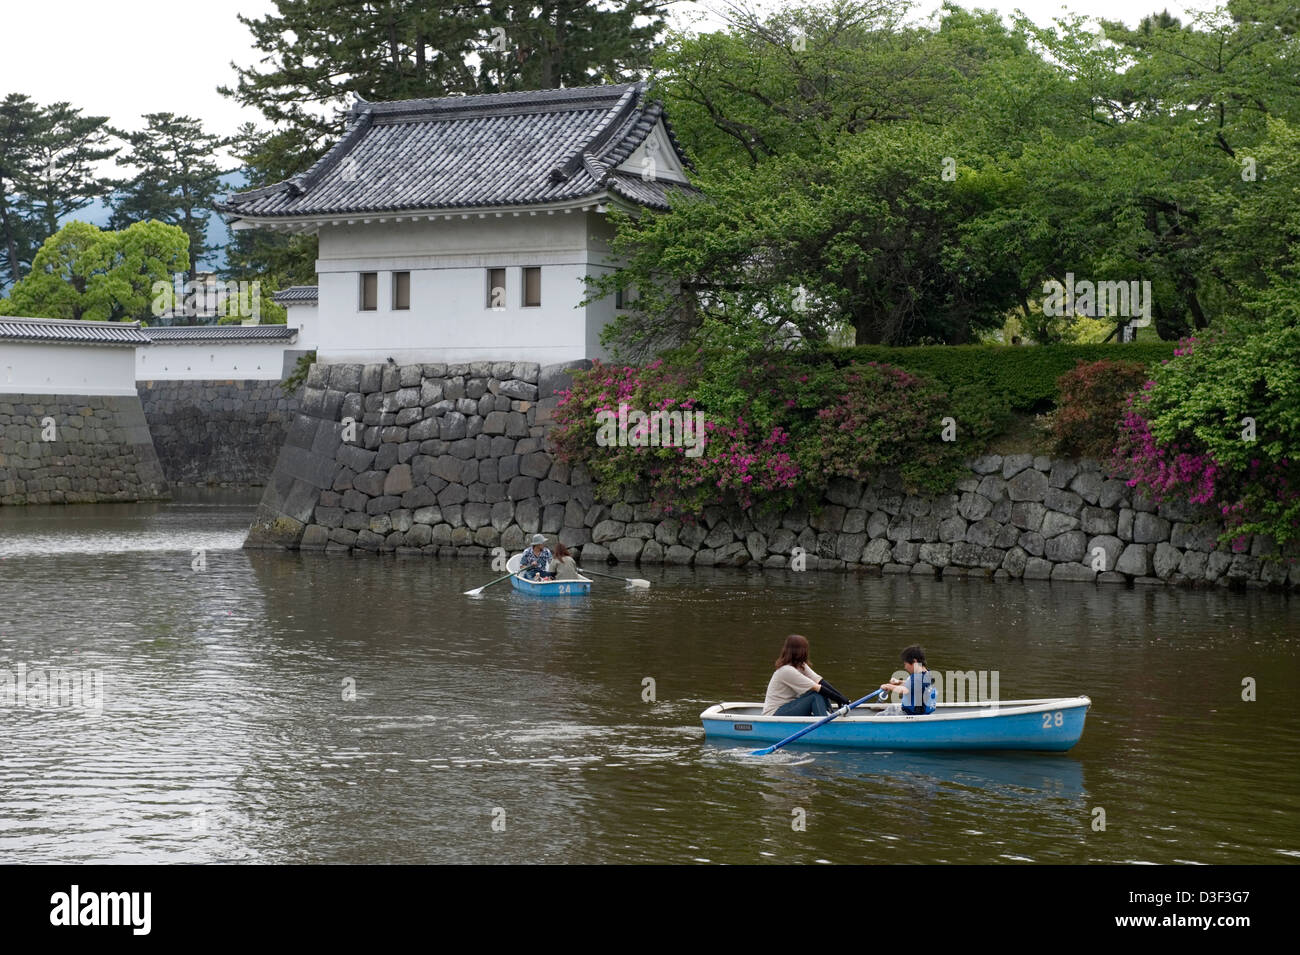 Boaters spend a relaxing afternoon navigating historic Odawara Castle moat past a guard tower and fortress walls - Stock Image